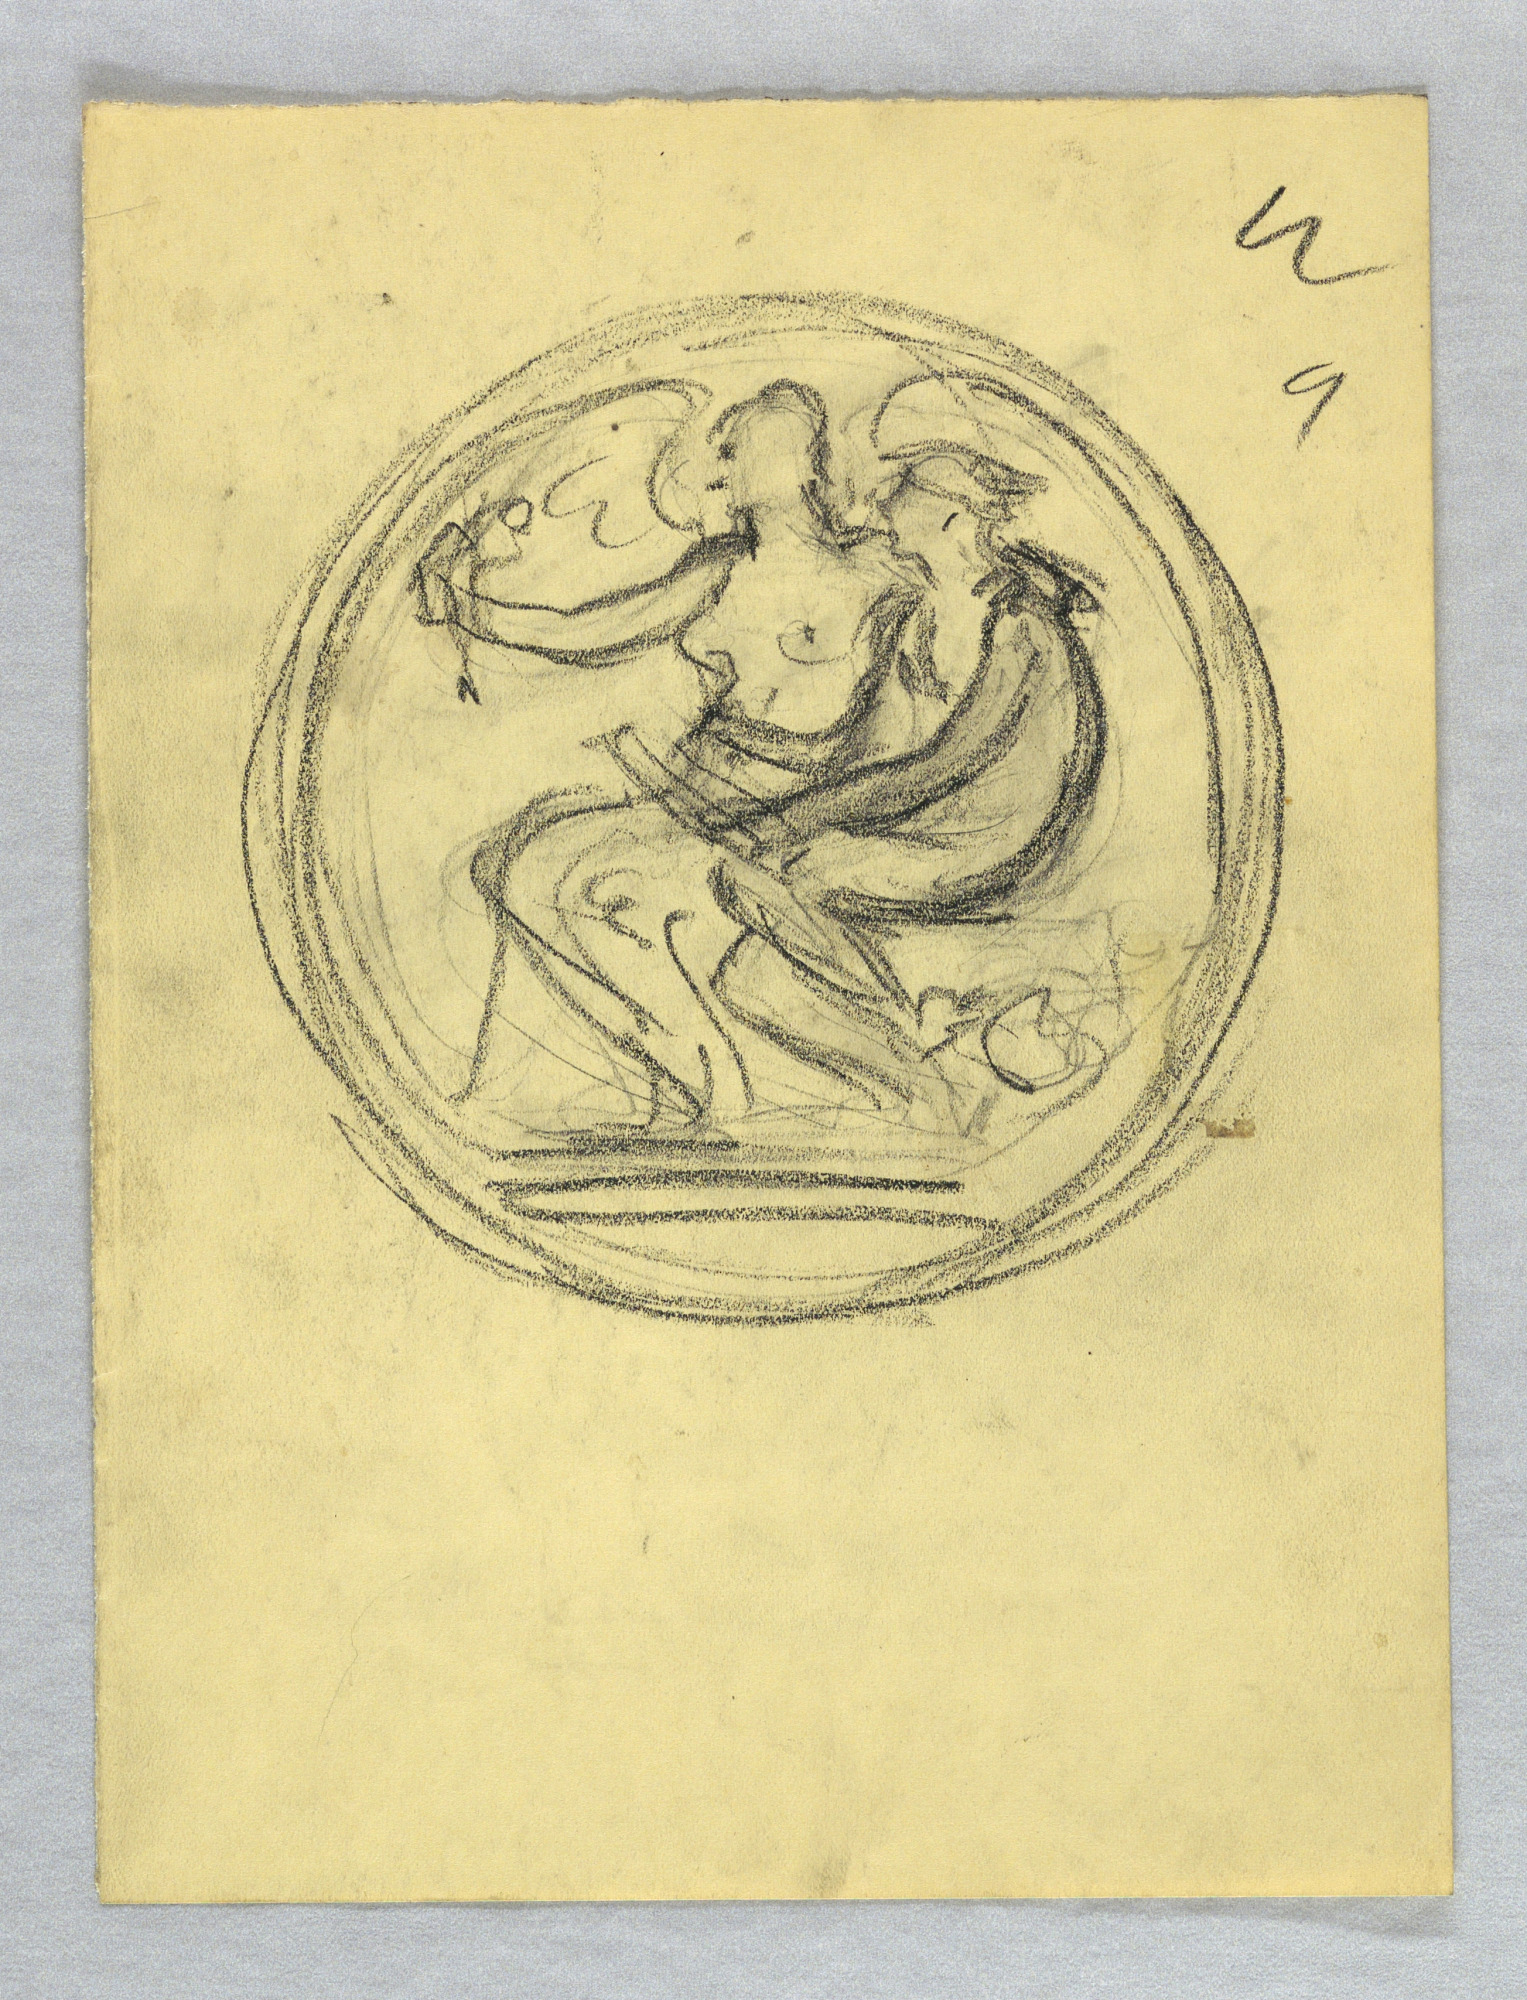 Studies for Obverse and Reverse of Michael Friedsam Medal for Industrial Art